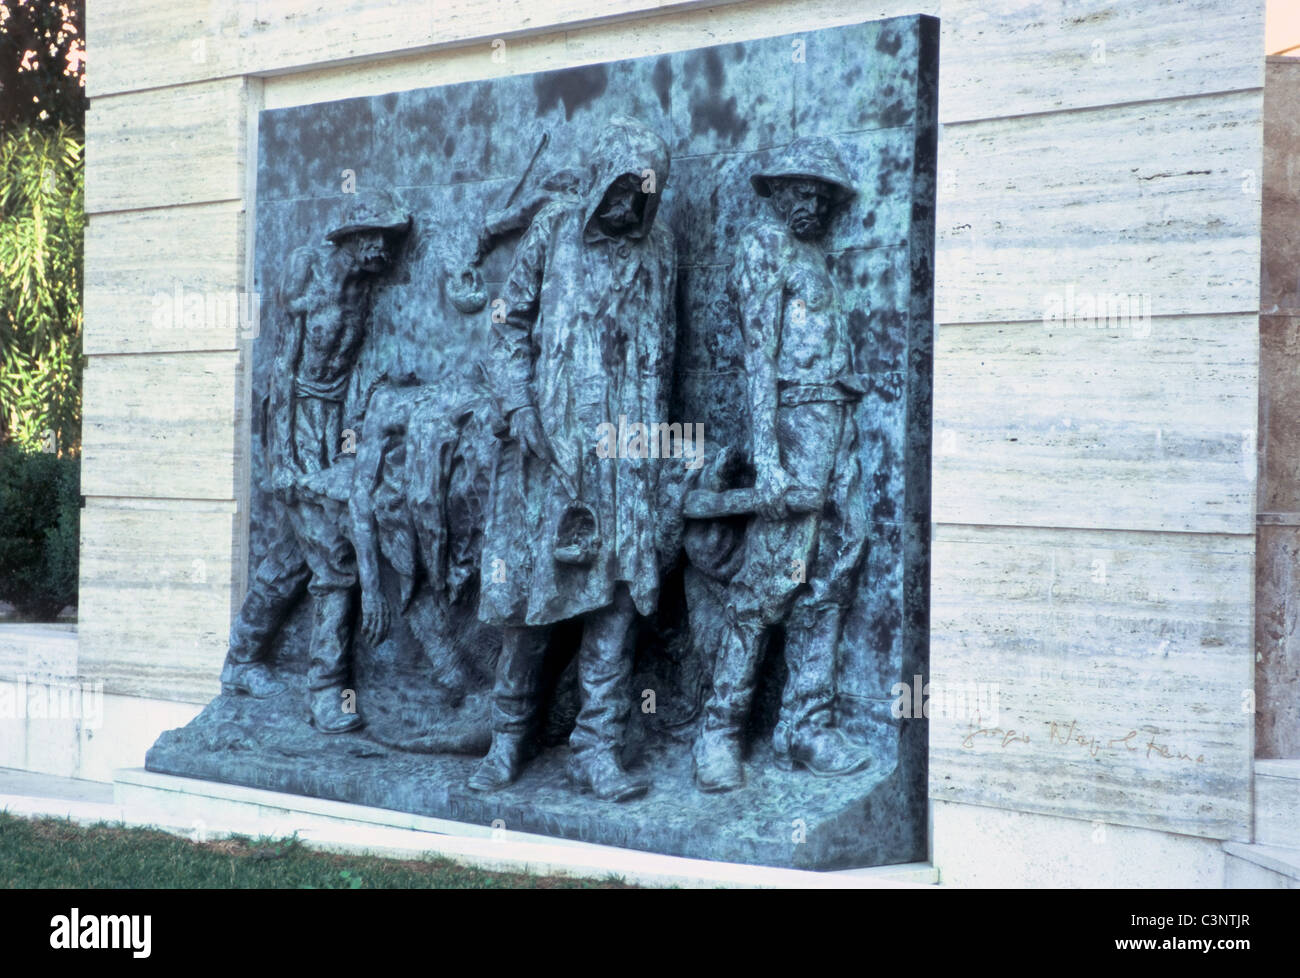 Monument to workplace accident victims - Stock Image